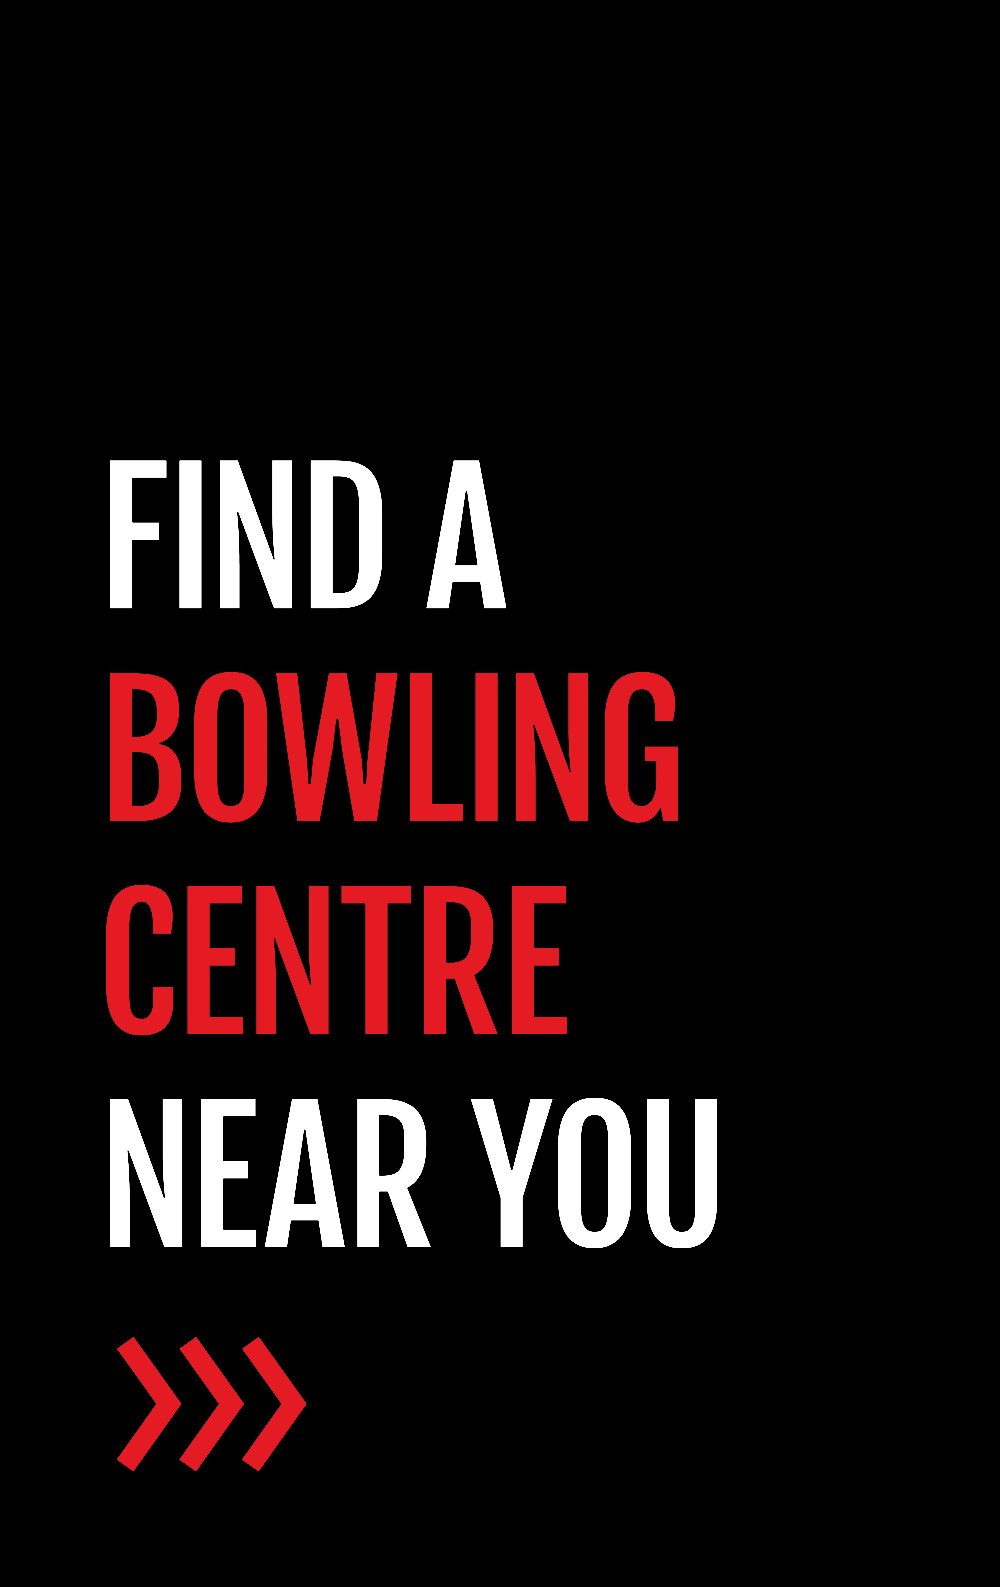 Find a Bowling Centre near you.